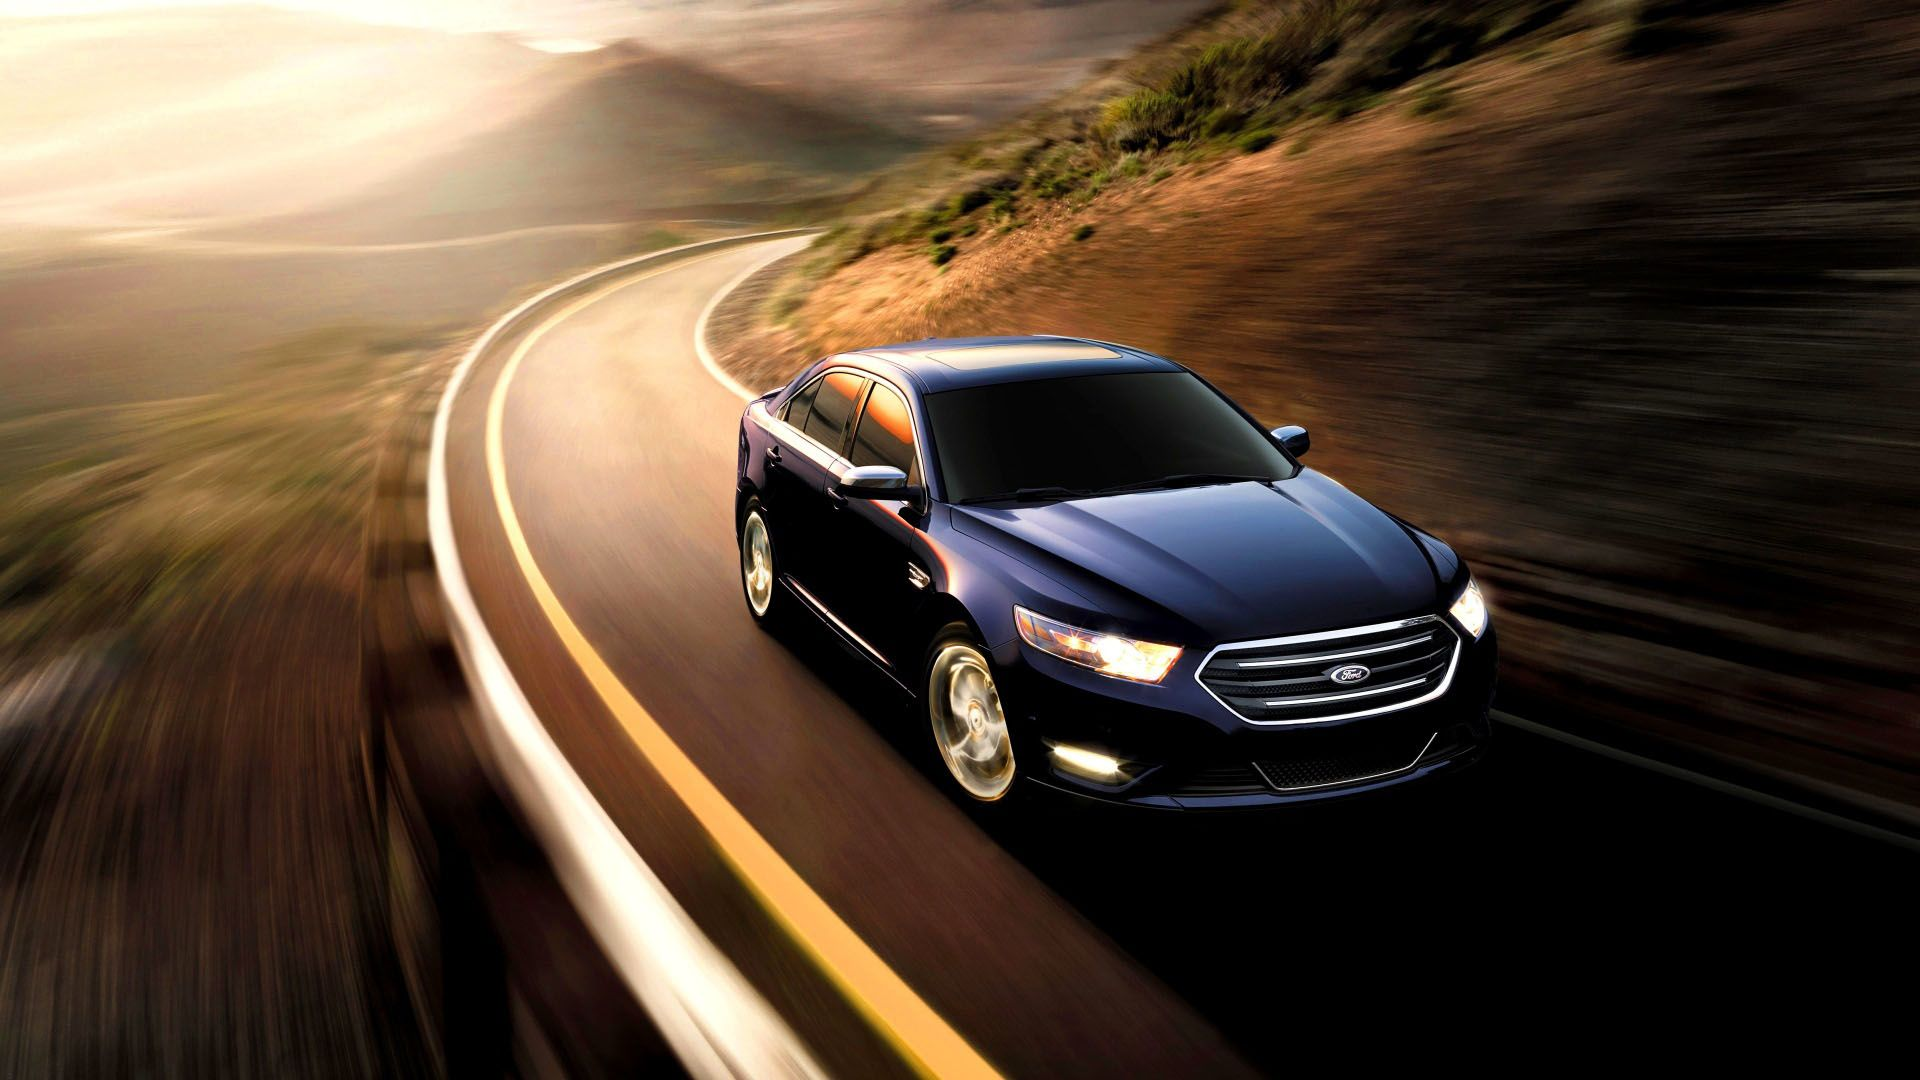 Ford Taurus Sho Black Car 2015 Desktop Backgrounds Taurus